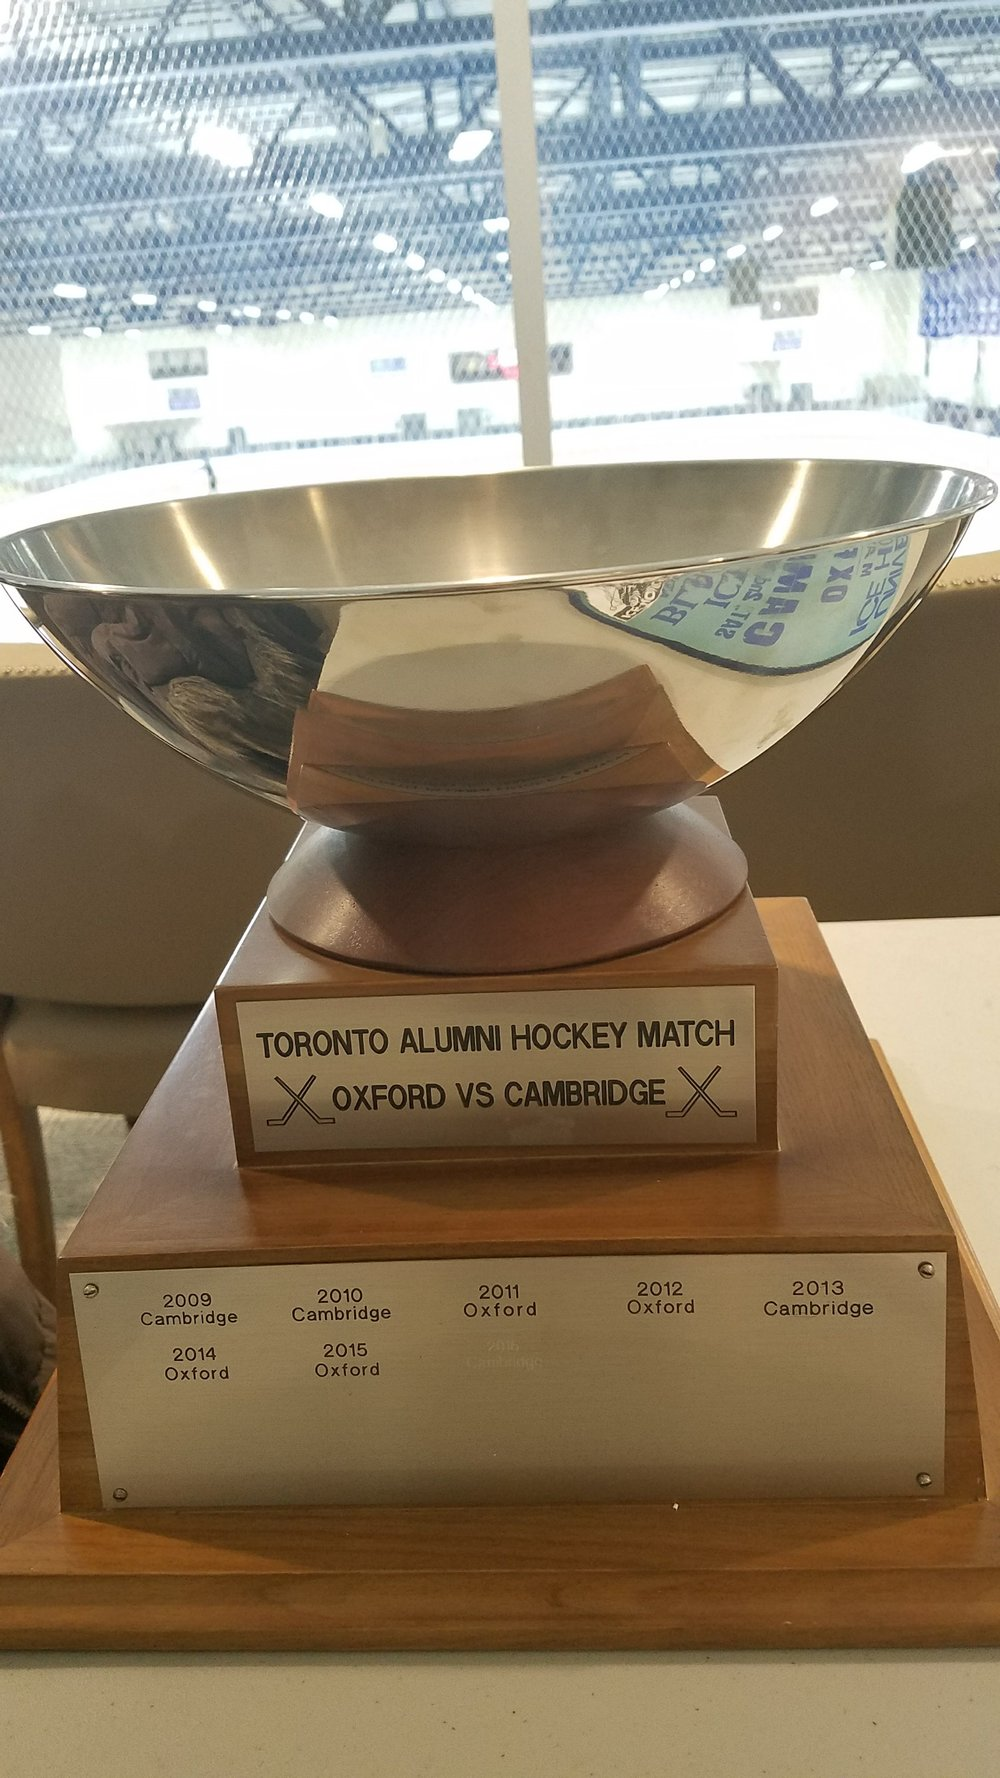 Cup for the winner of the Toronto Alumni game.